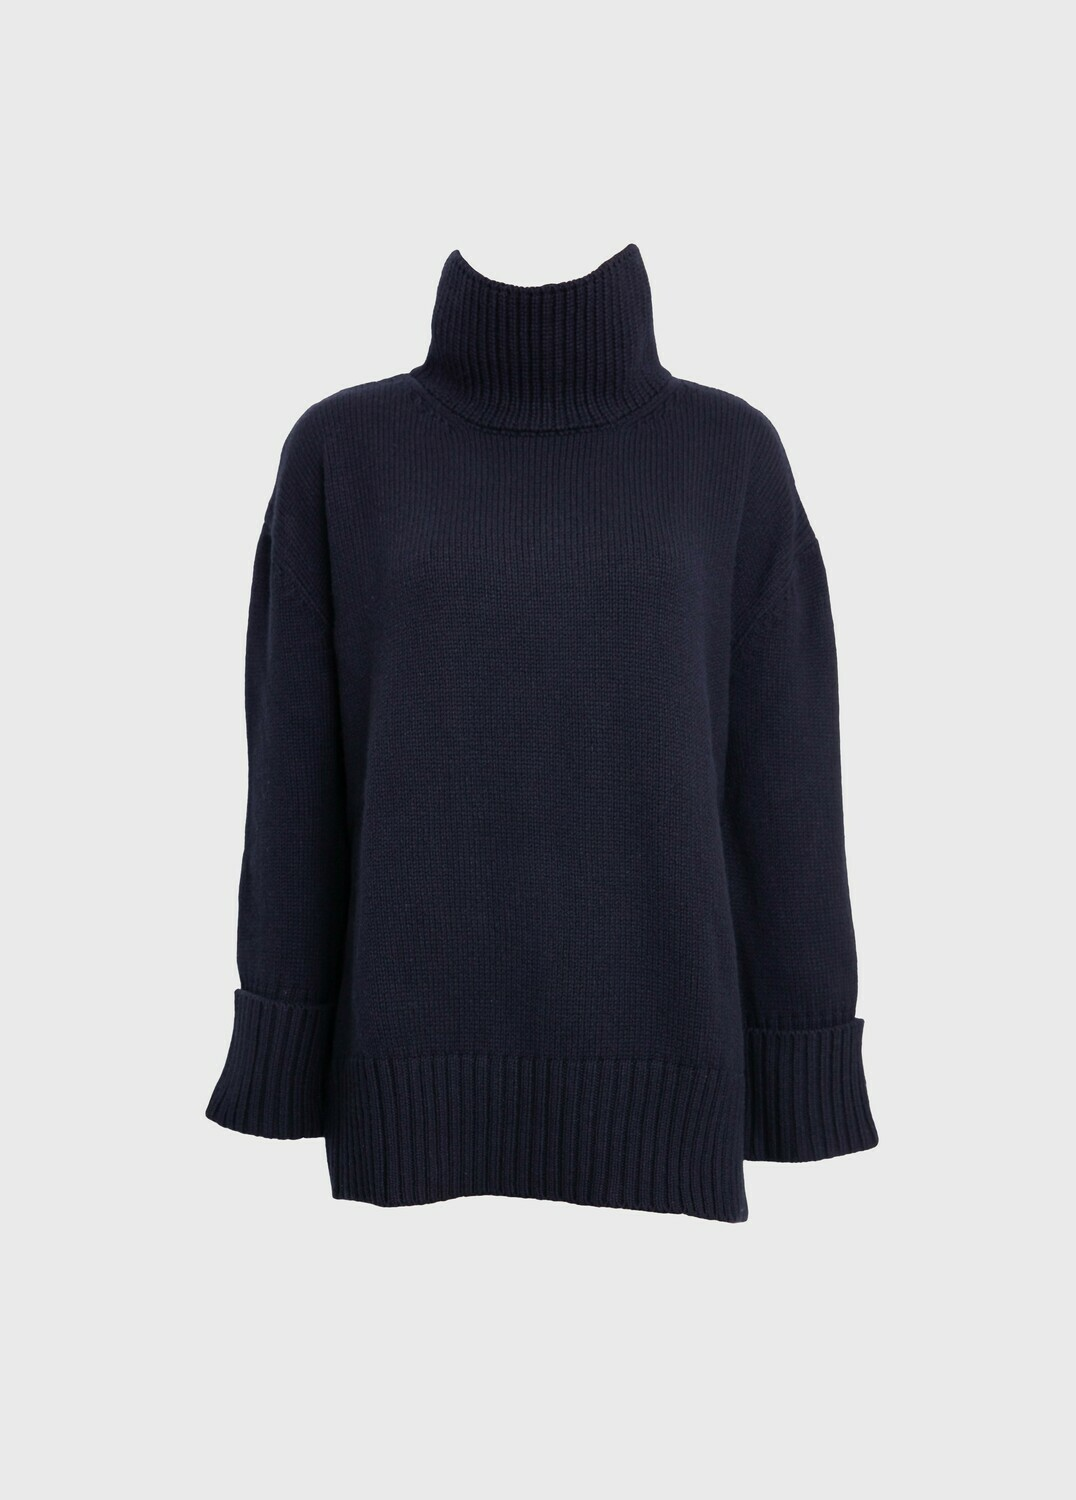 OVERSIZED CASHMERE-WOOL SWEATER TURTLE NECK IN BLACK